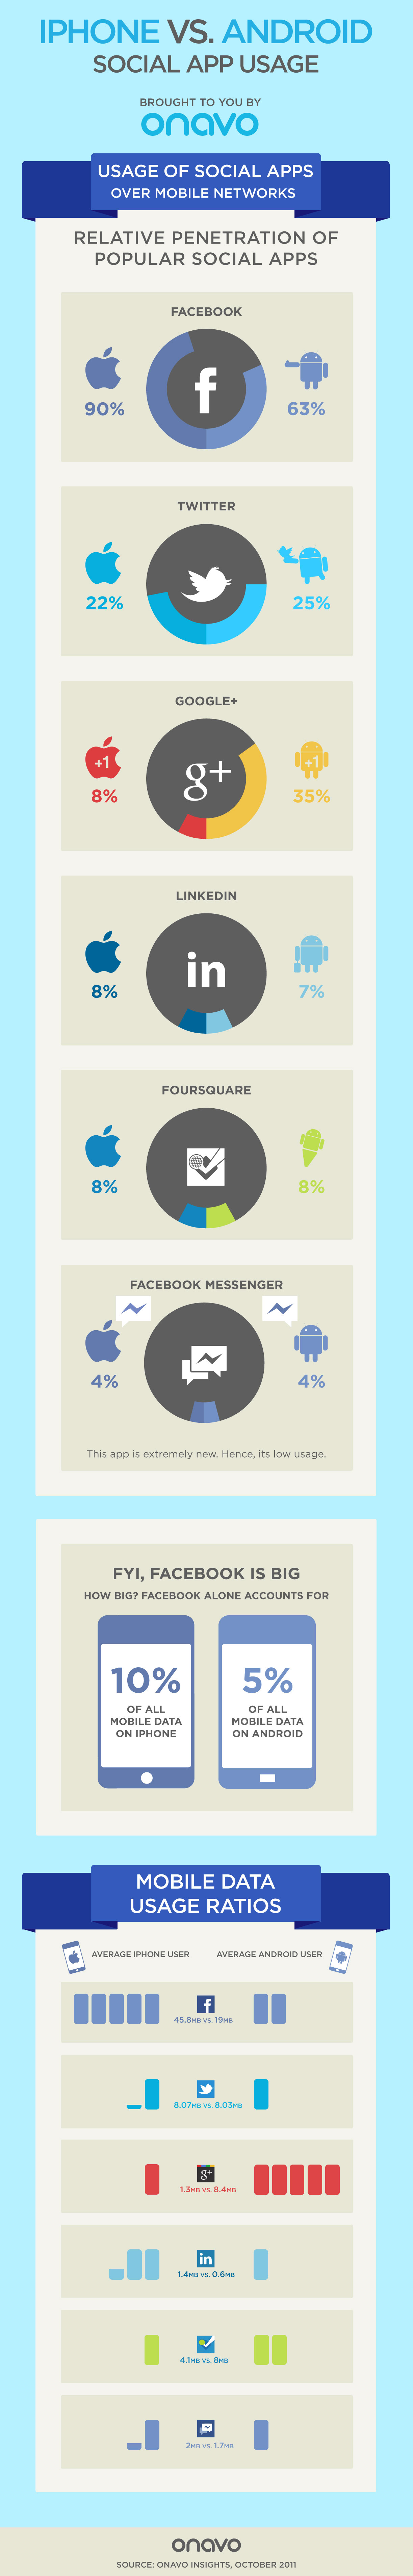 Onavo - iPhone vs. Android em apps sociais